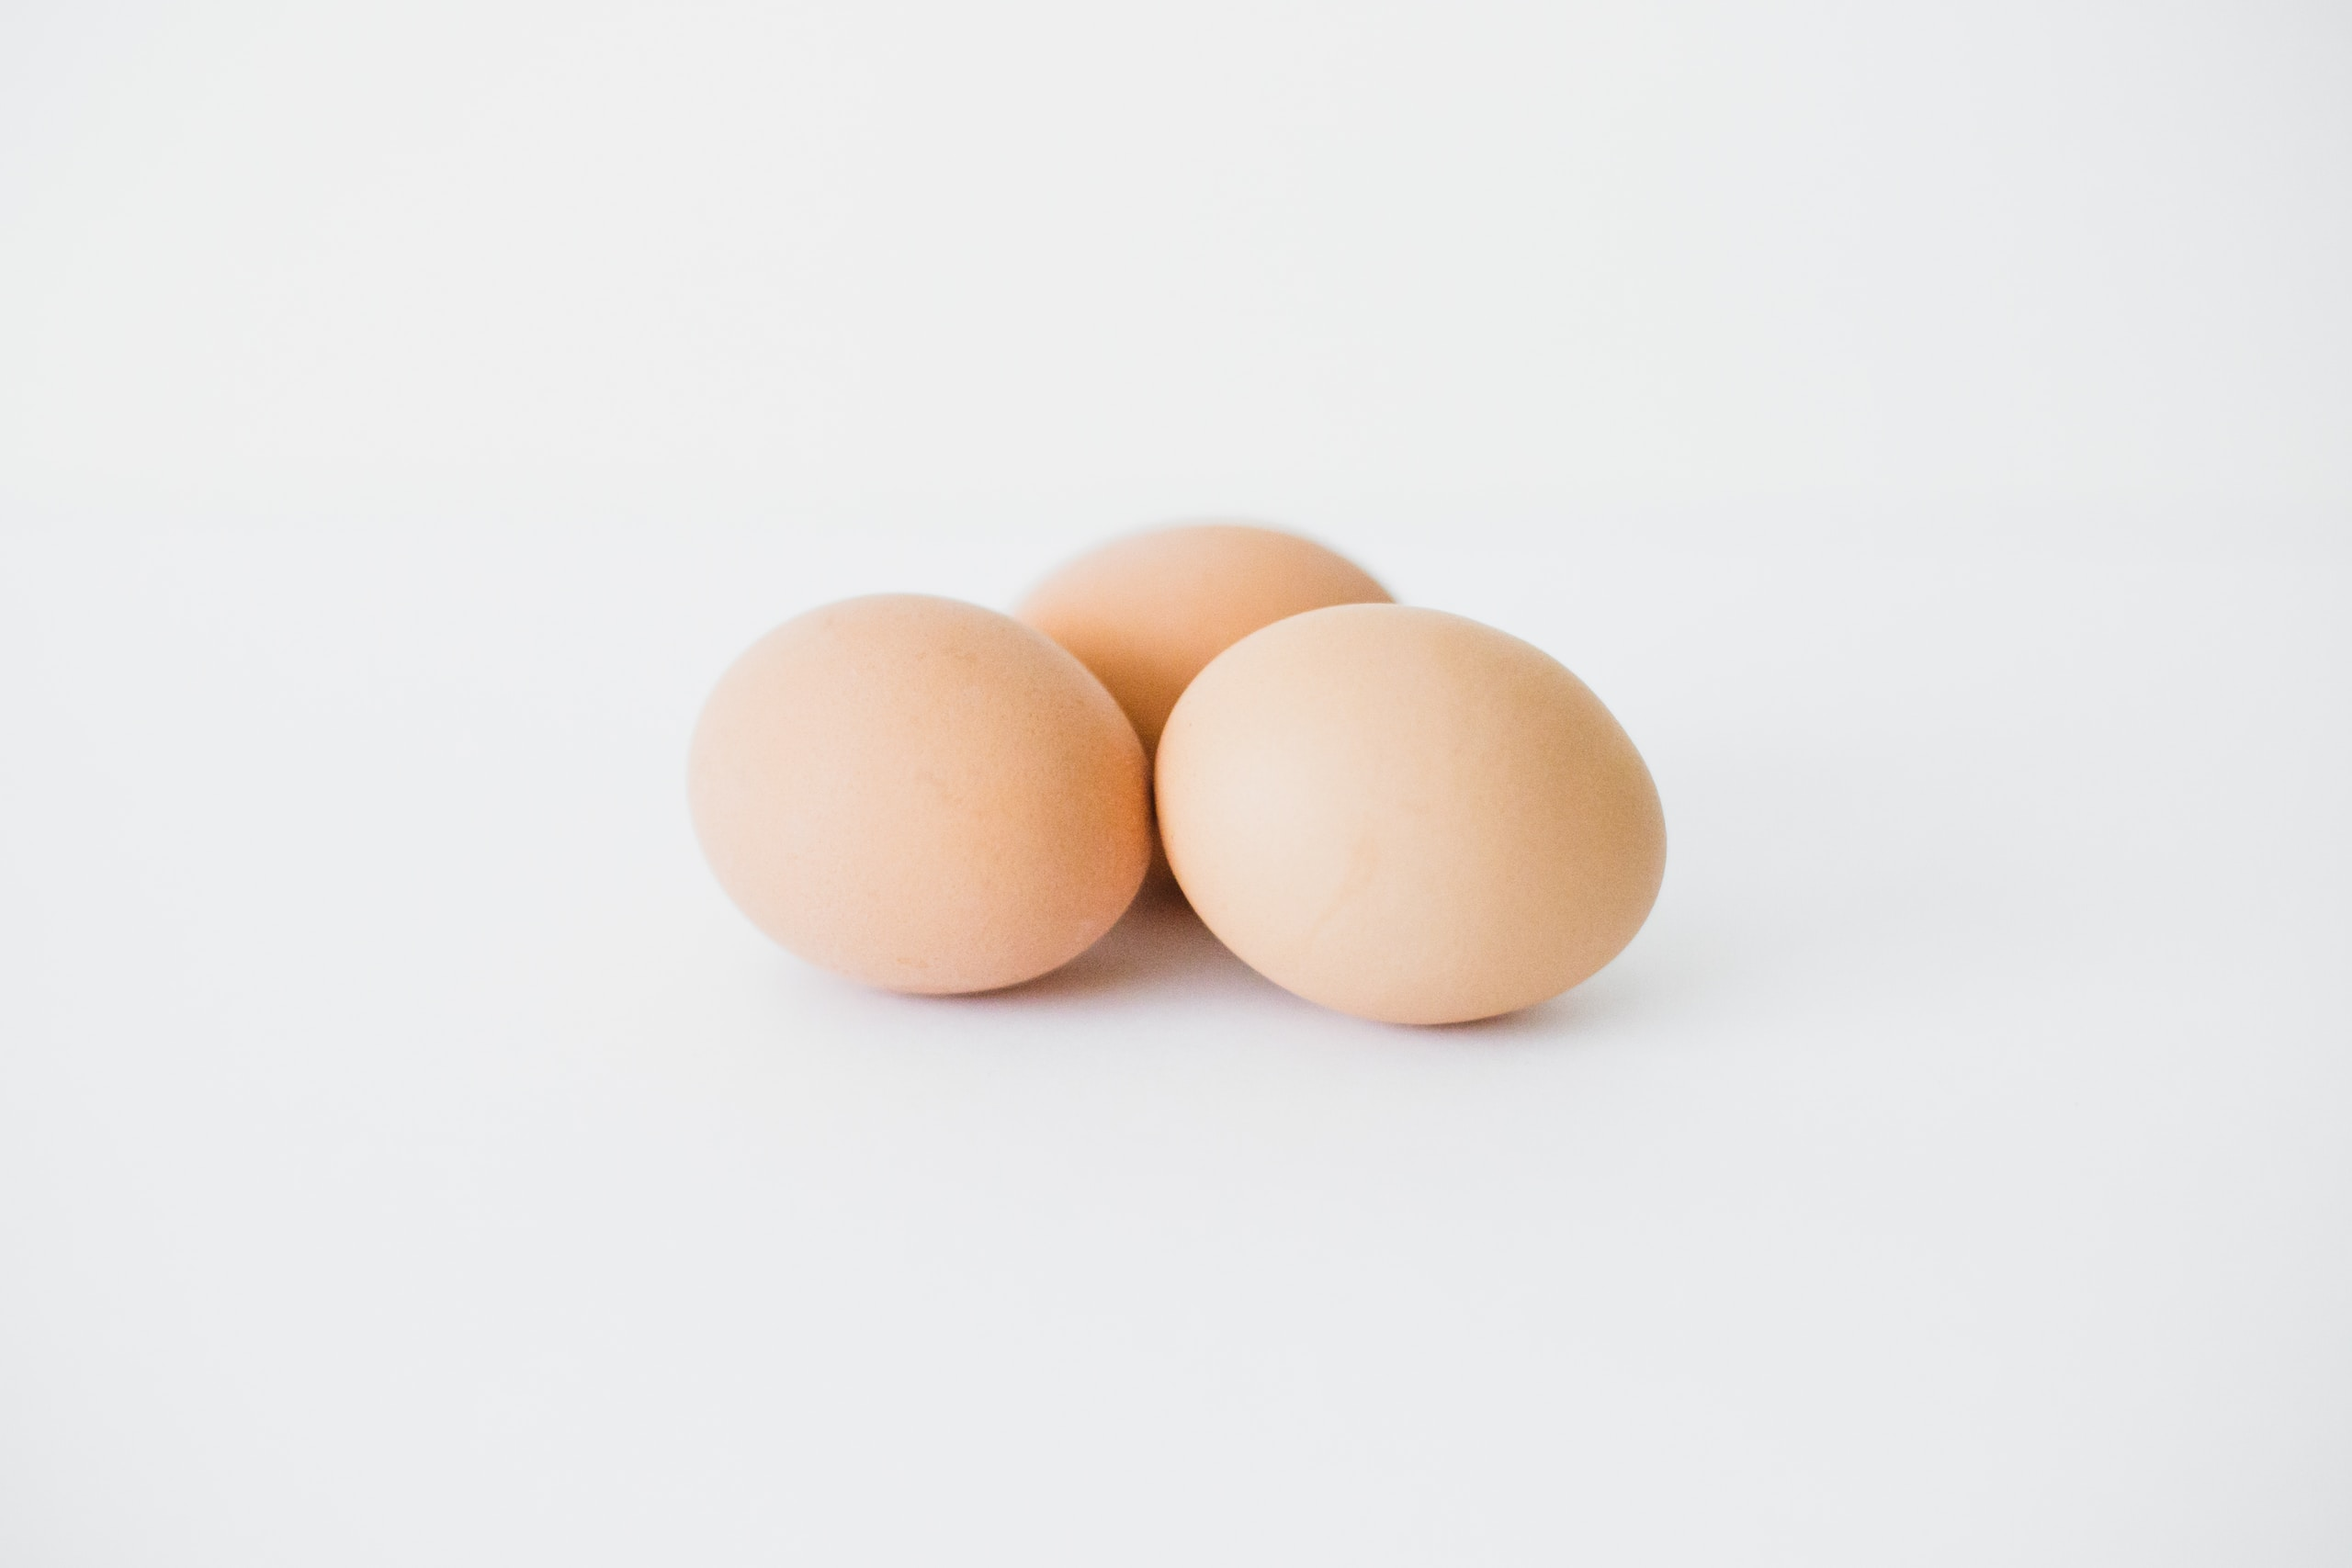 In trying times, hard boiled eggs are a warm hug